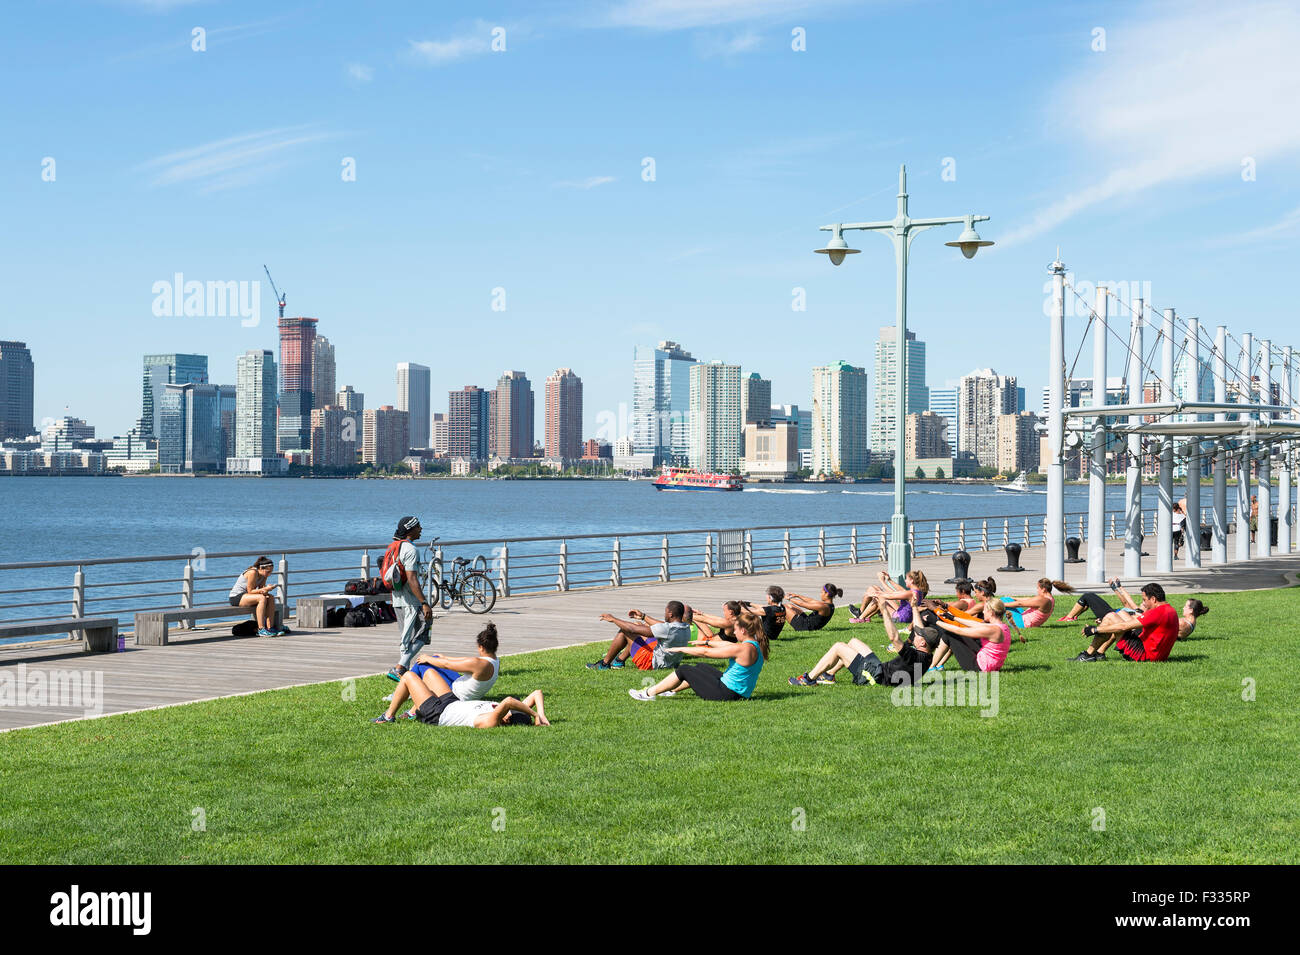 NEW YORK CITY, USA - AUGUST 29, 2015: Personal trainer leads group boot camp fitness class near the Hudson River. - Stock Image